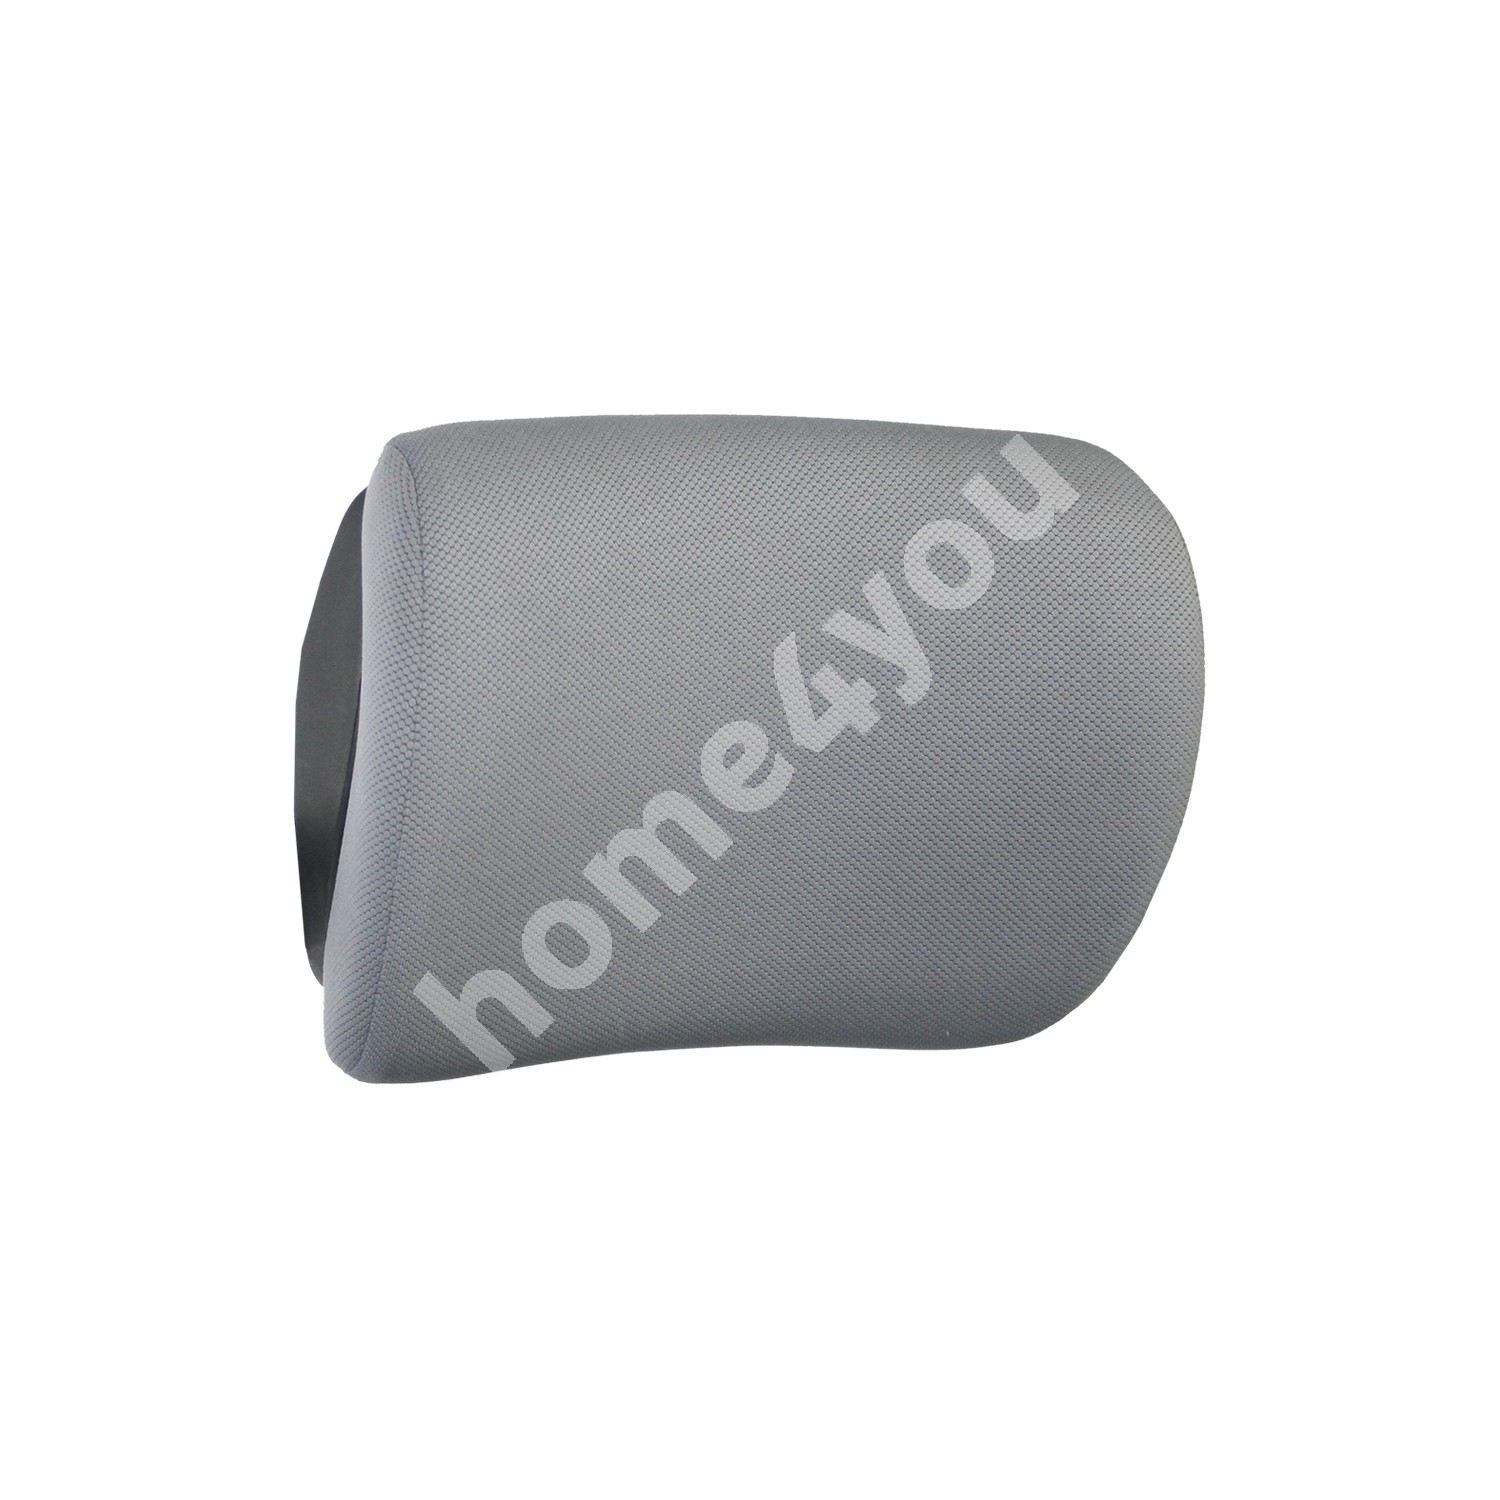 Headrest FULKRUM, 29x22x12cm, cover material: fabric, color: grey